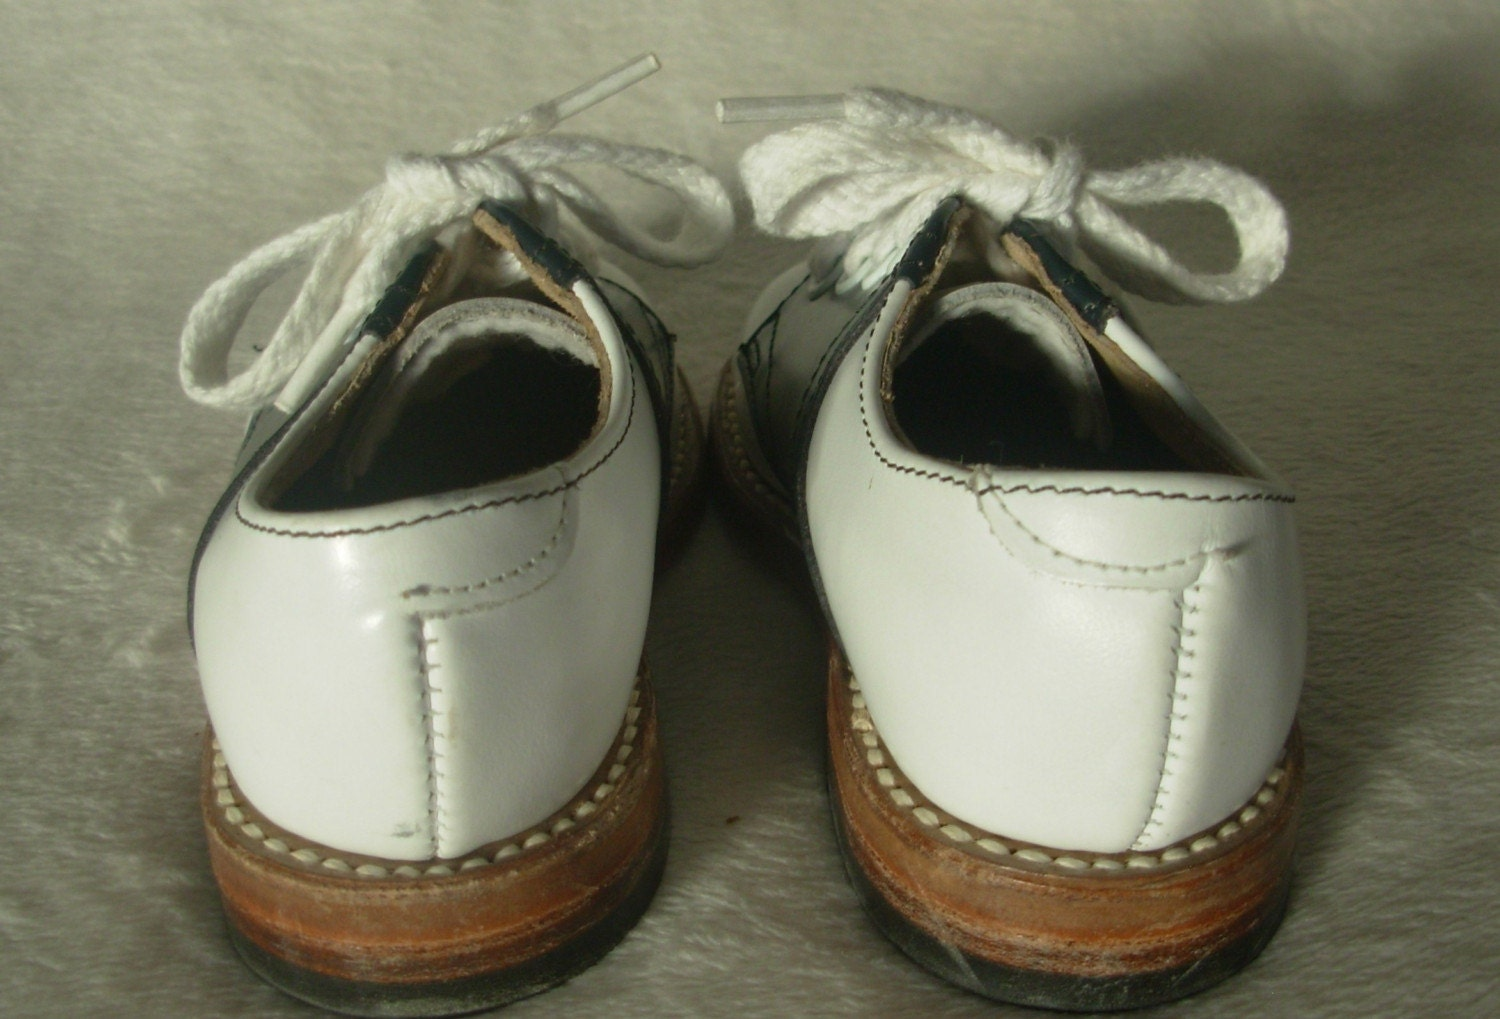 Vintage Circa 1960s Childs Leather Saddle Oxford Shoes Made